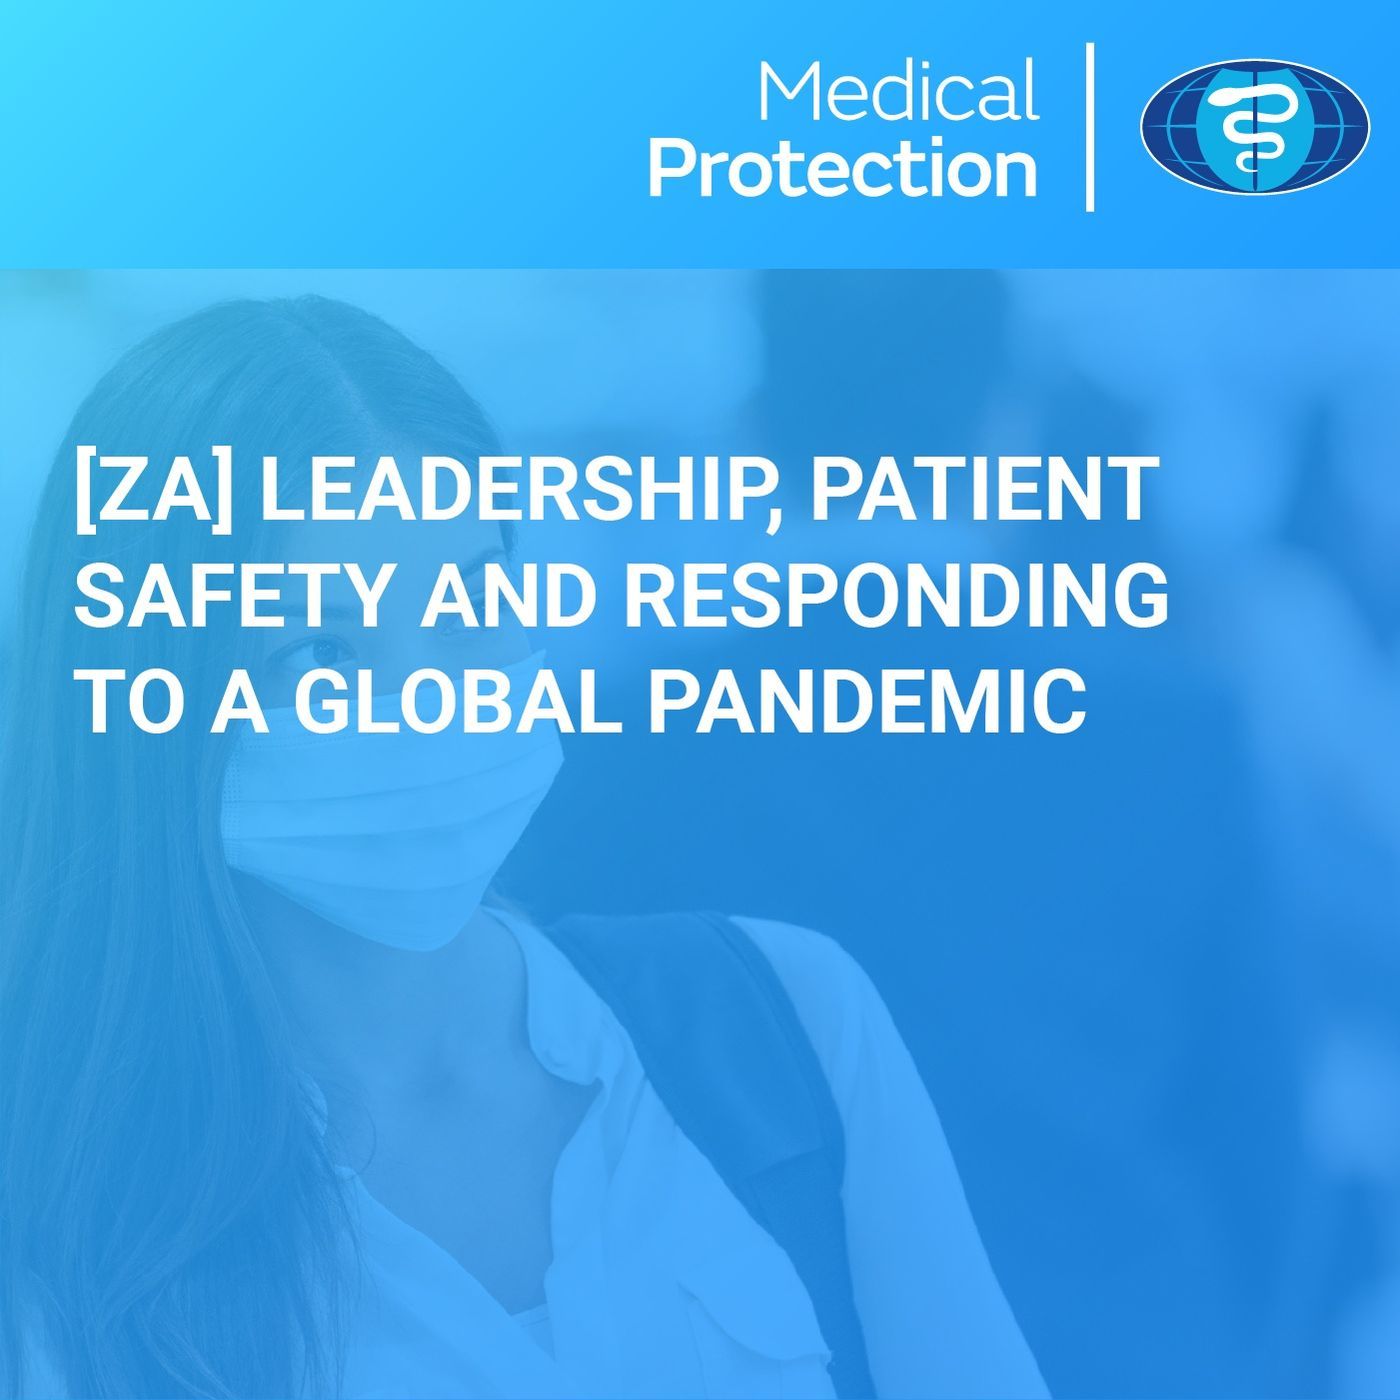 [ZA] Leadership, patient safety and responding to a global pandemic